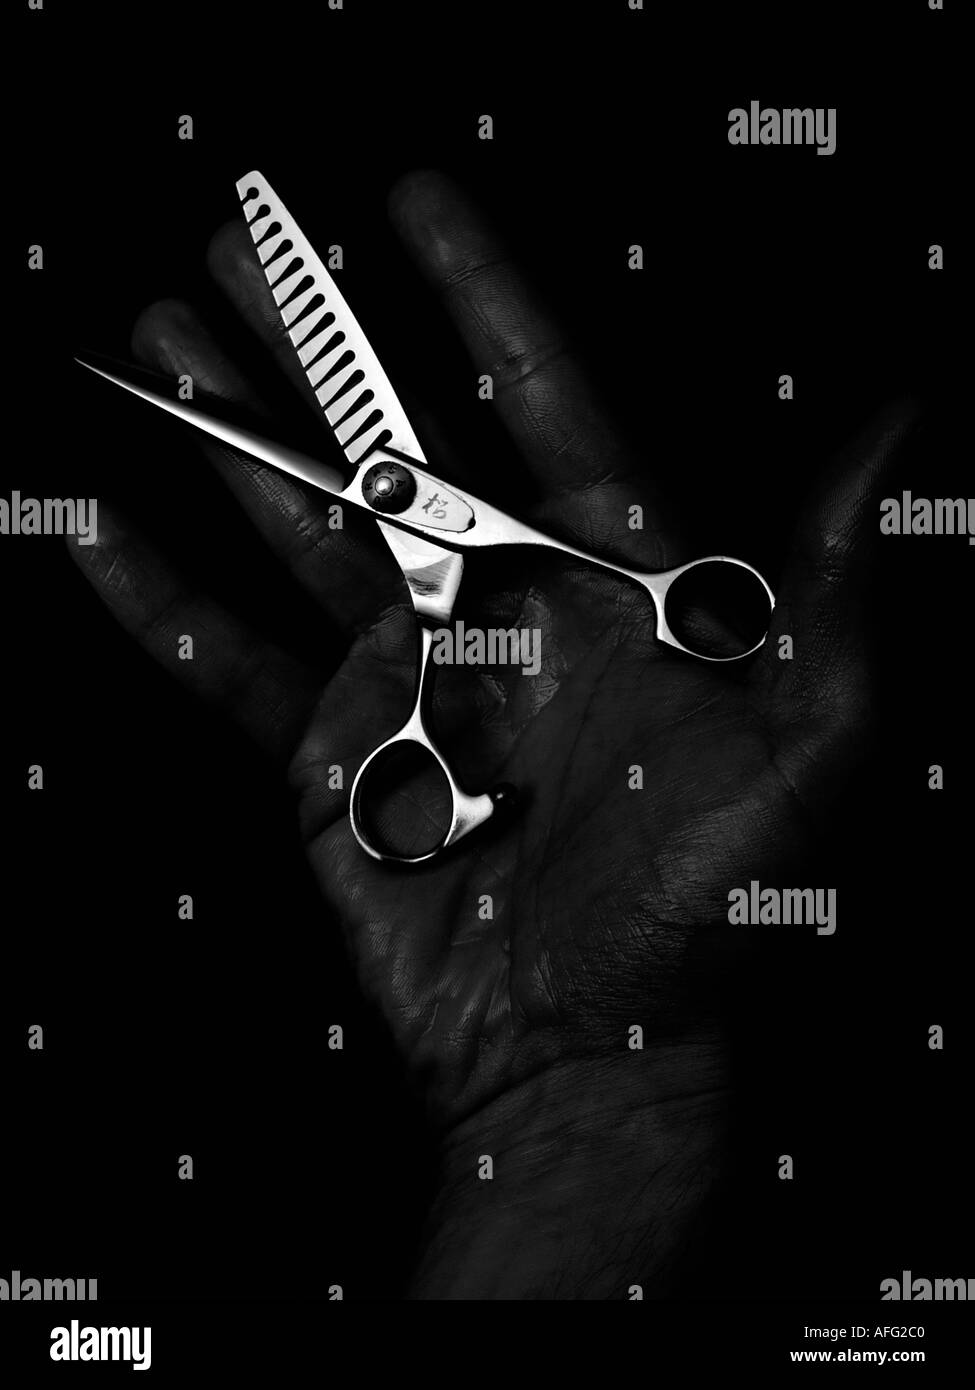 Monochrome dark low key shot of a mans hand with very special hairdressers scissors shears - Stock Image